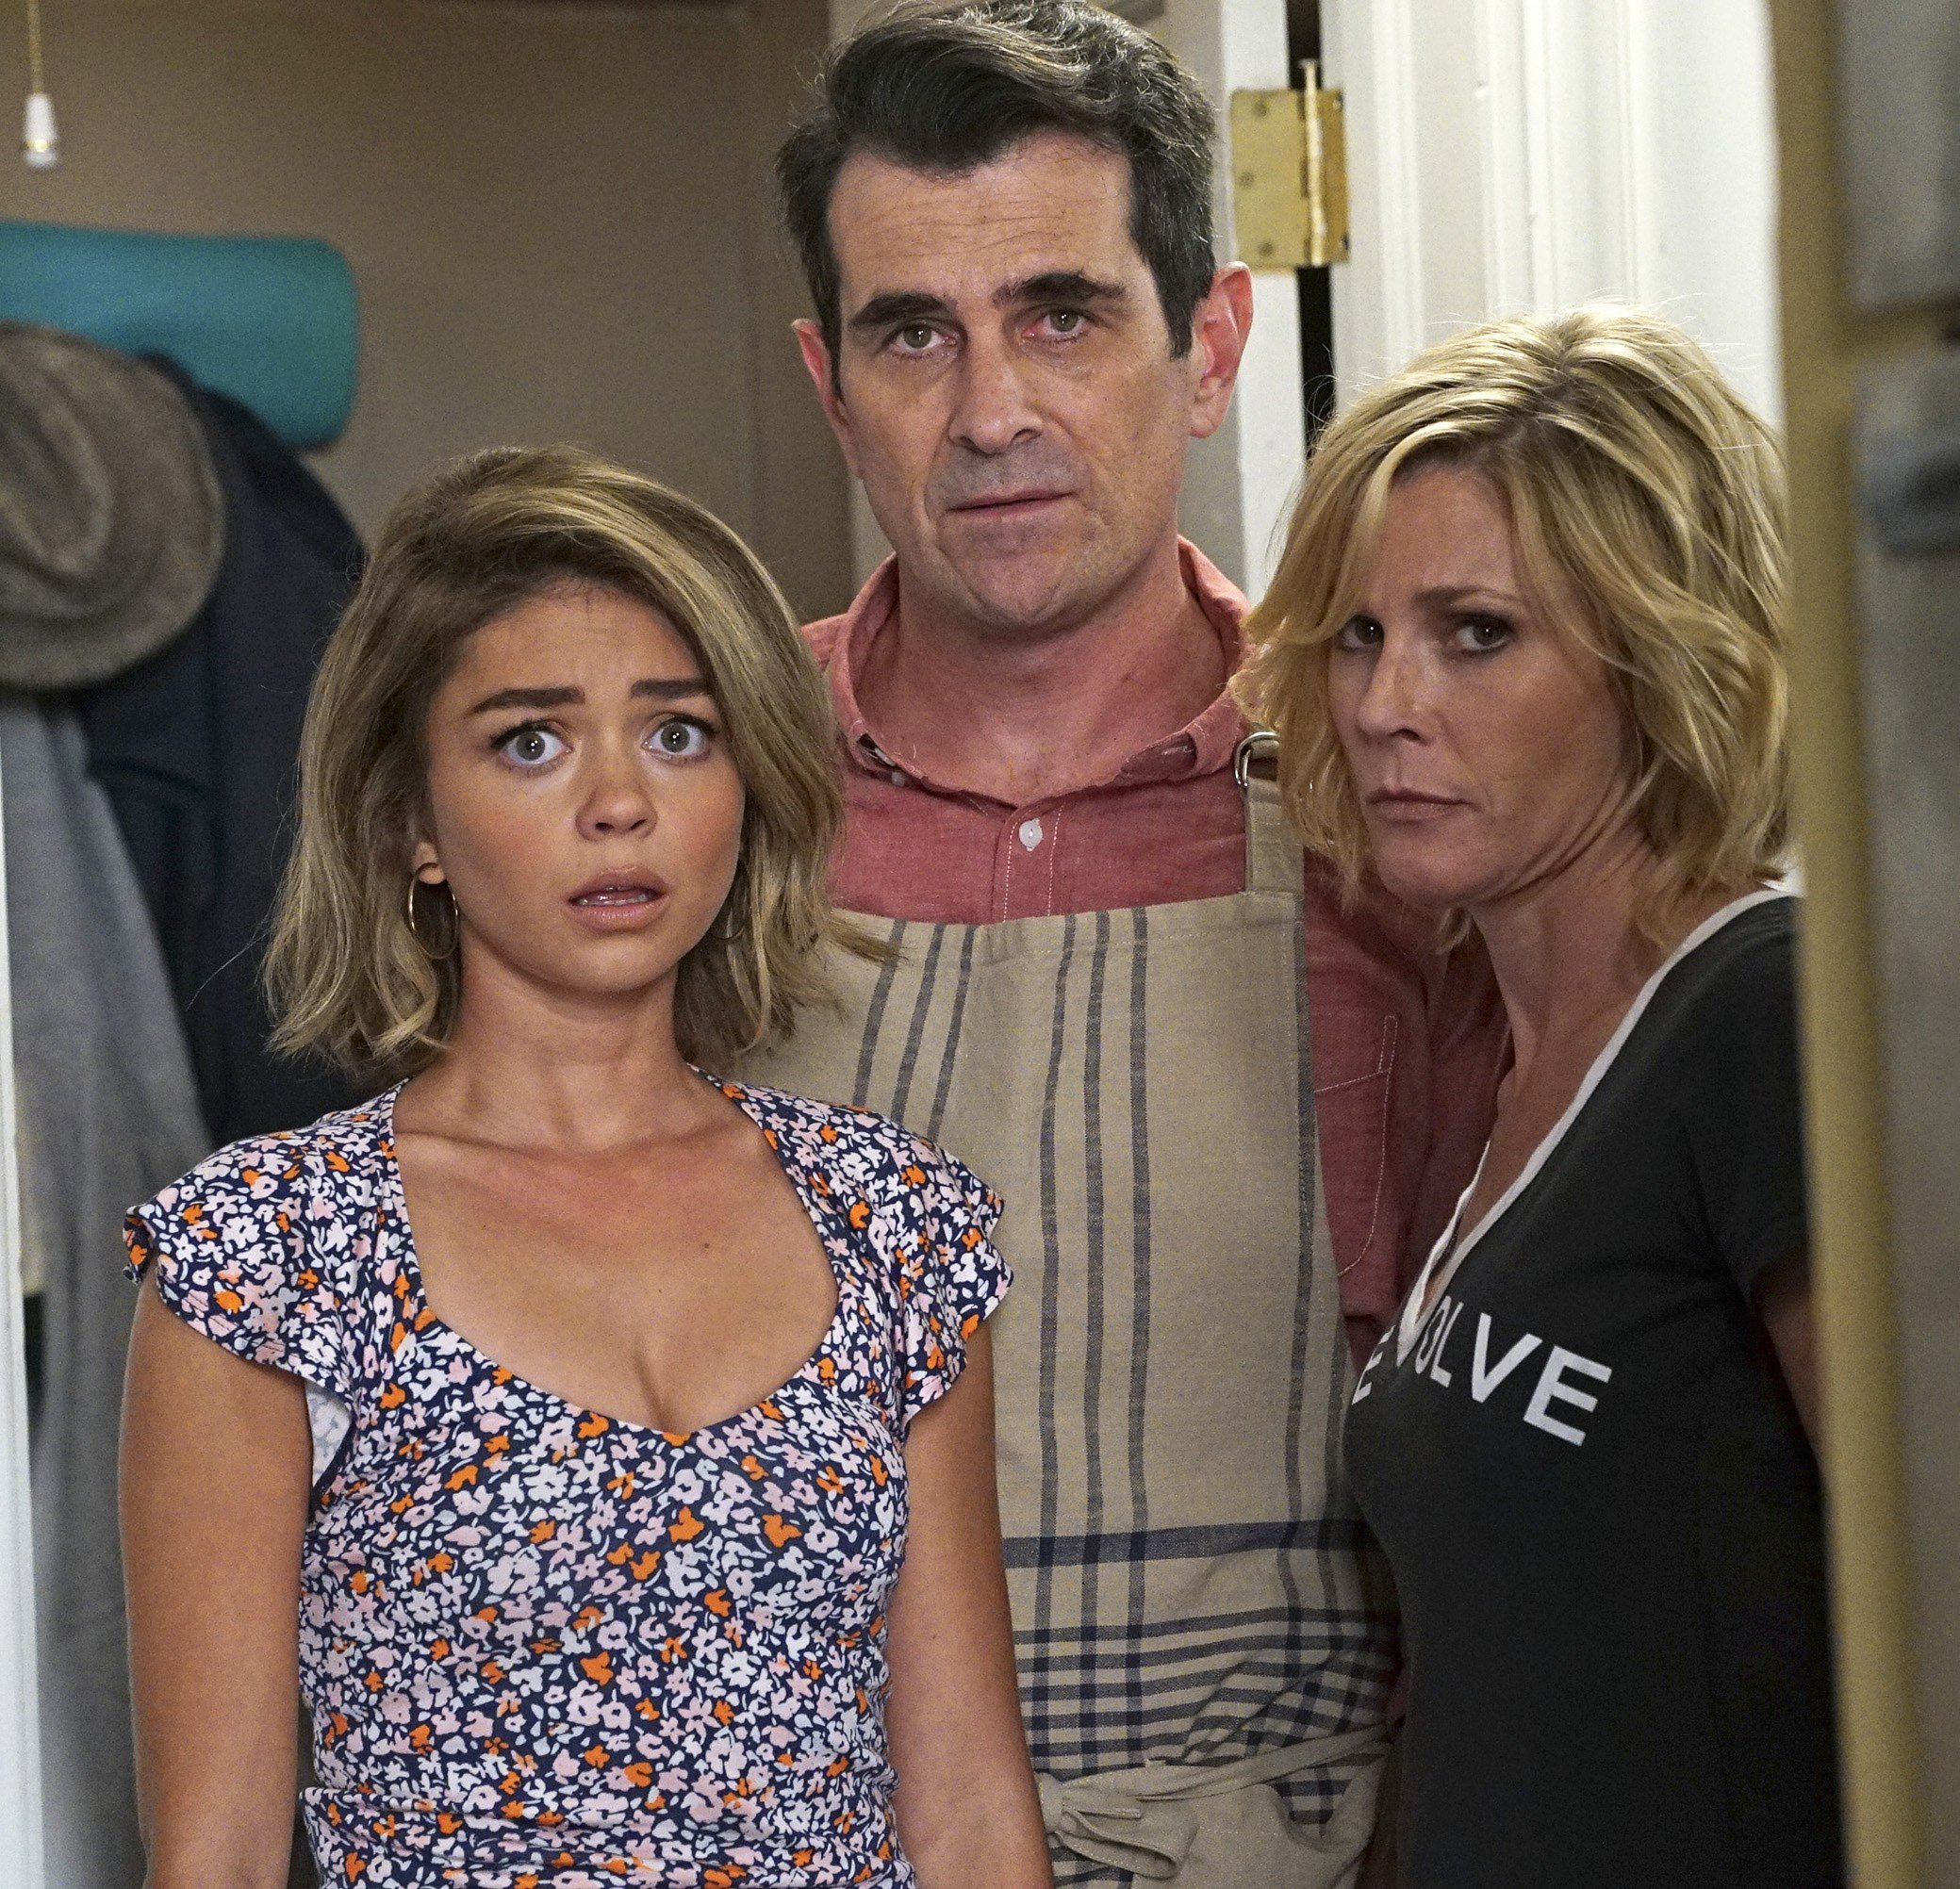 gettyimages 487645272 10 Things You Never Knew About Modern Family